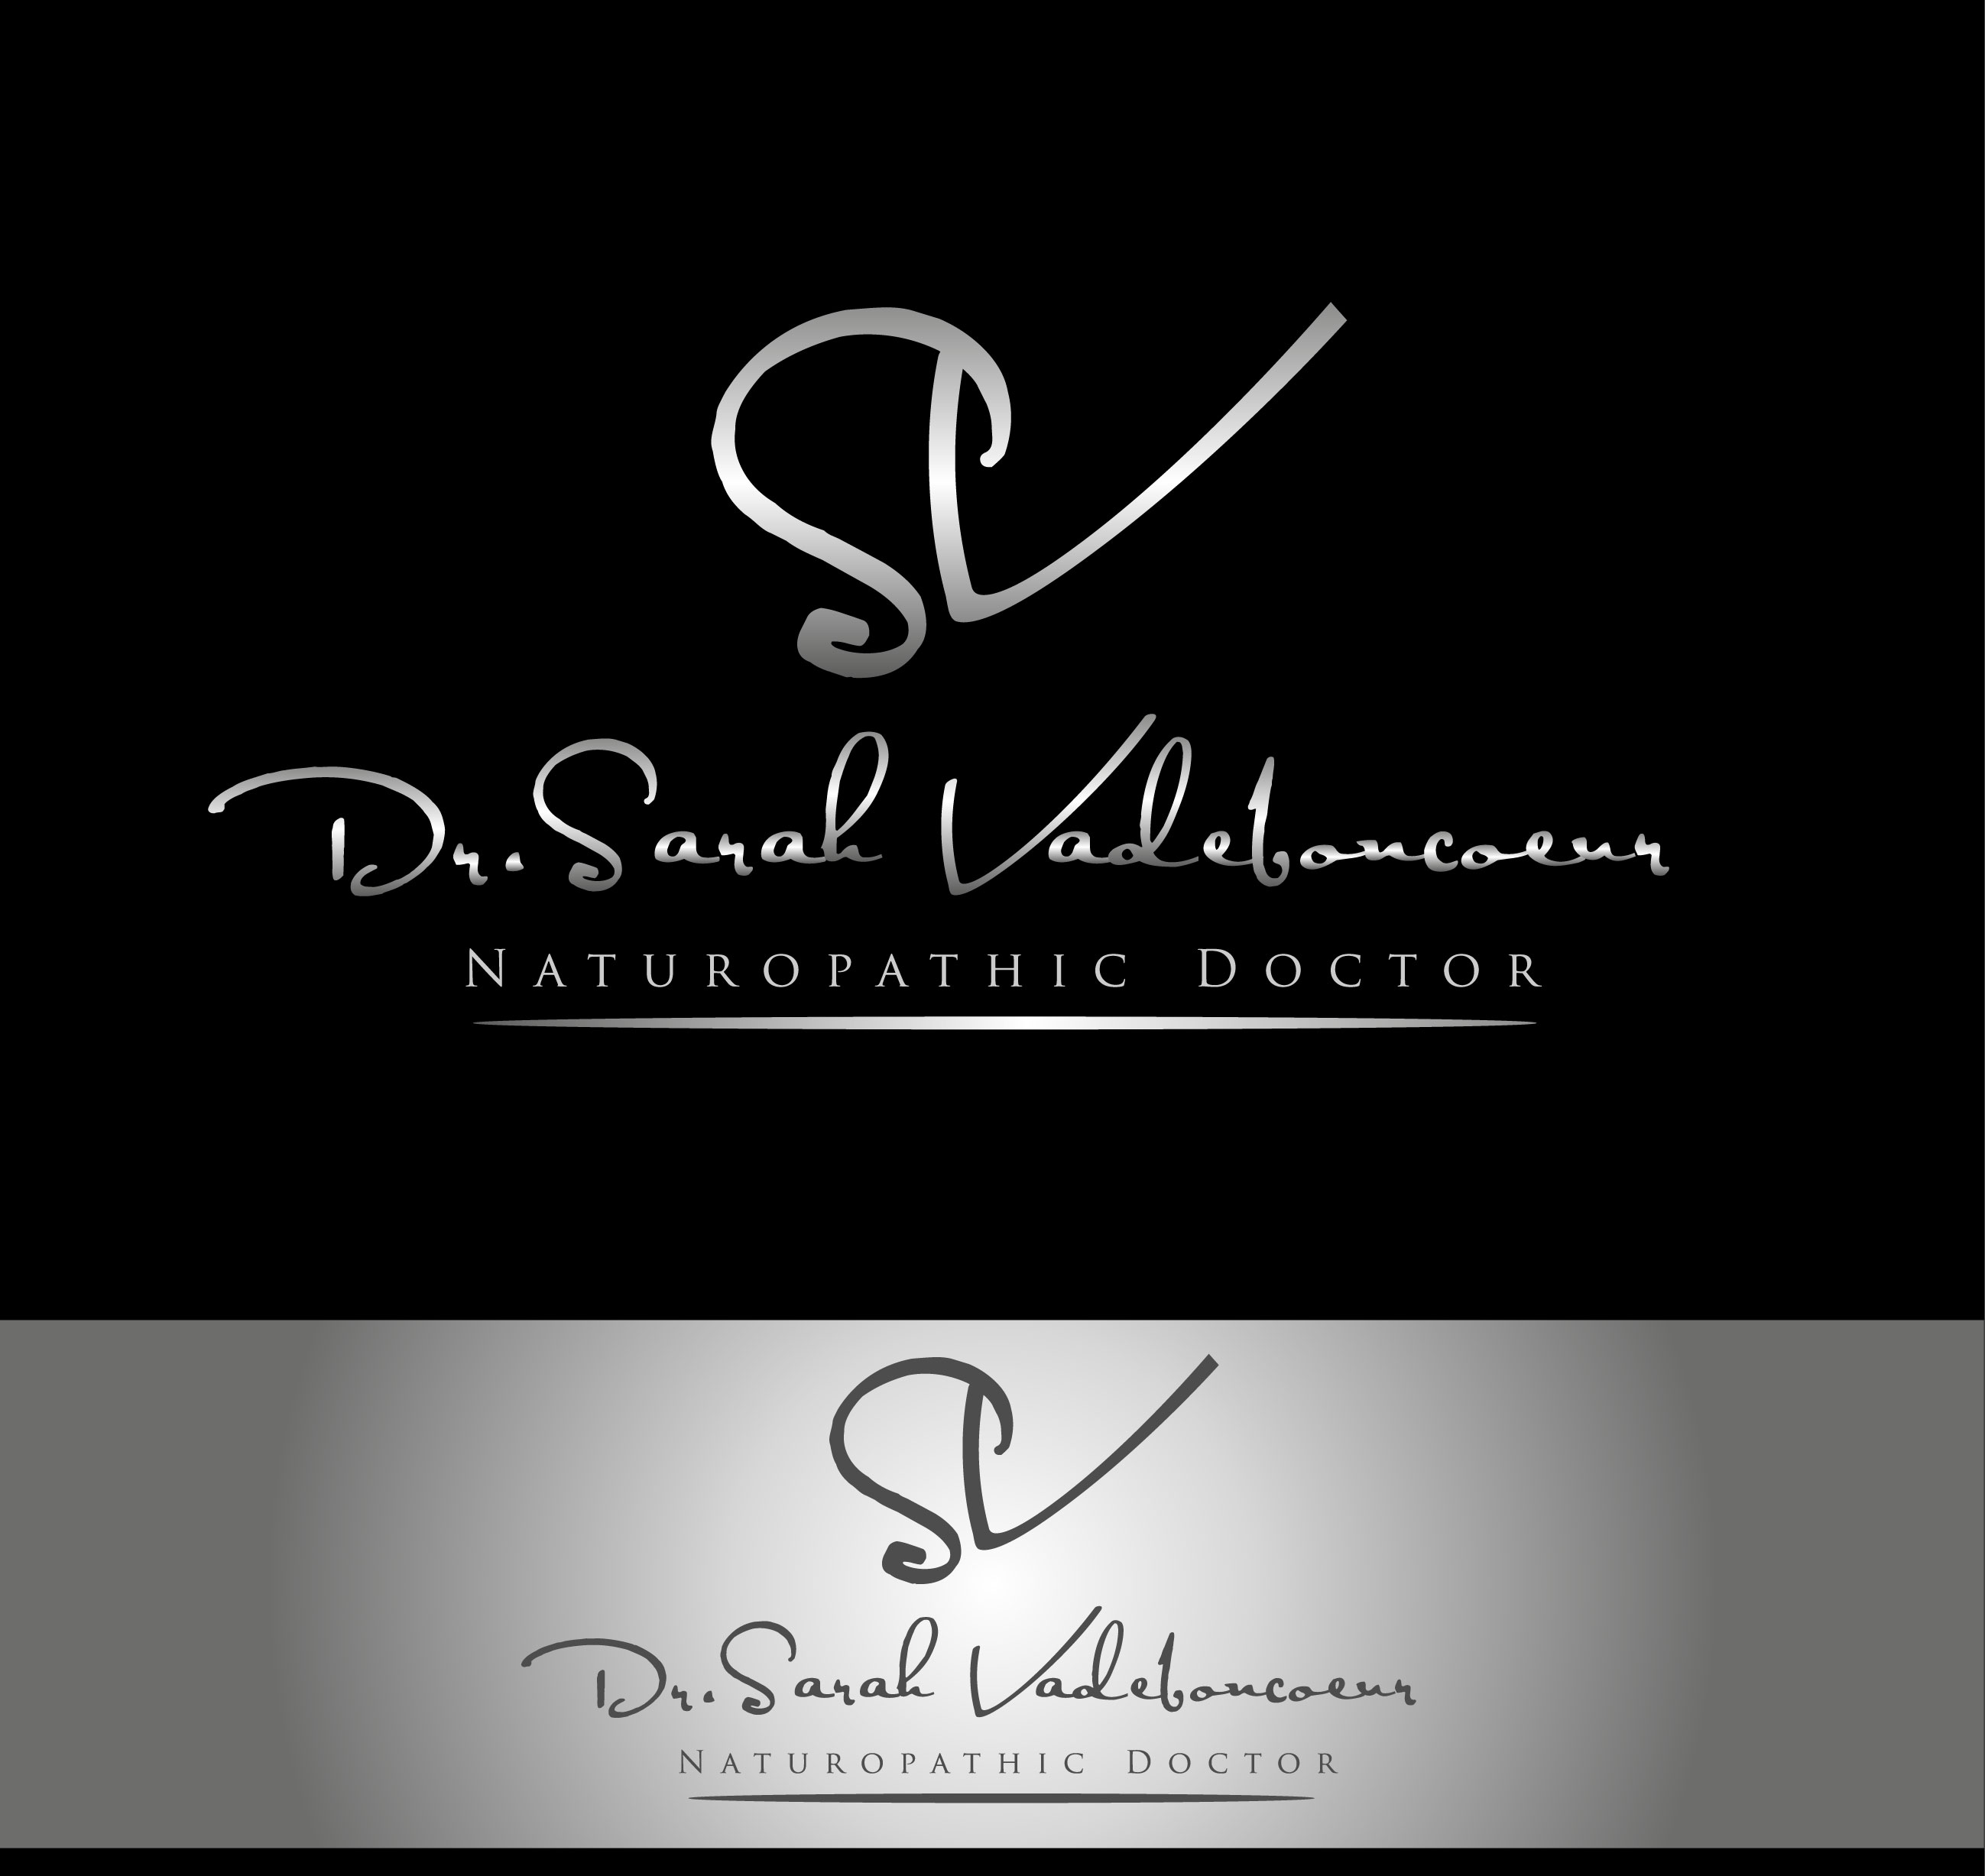 Logo Design by Darina Dimitrova - Entry No. 14 in the Logo Design Contest New Logo Design for Dr. Sarah Vadeboncoeur, Naturopathic Doctor.